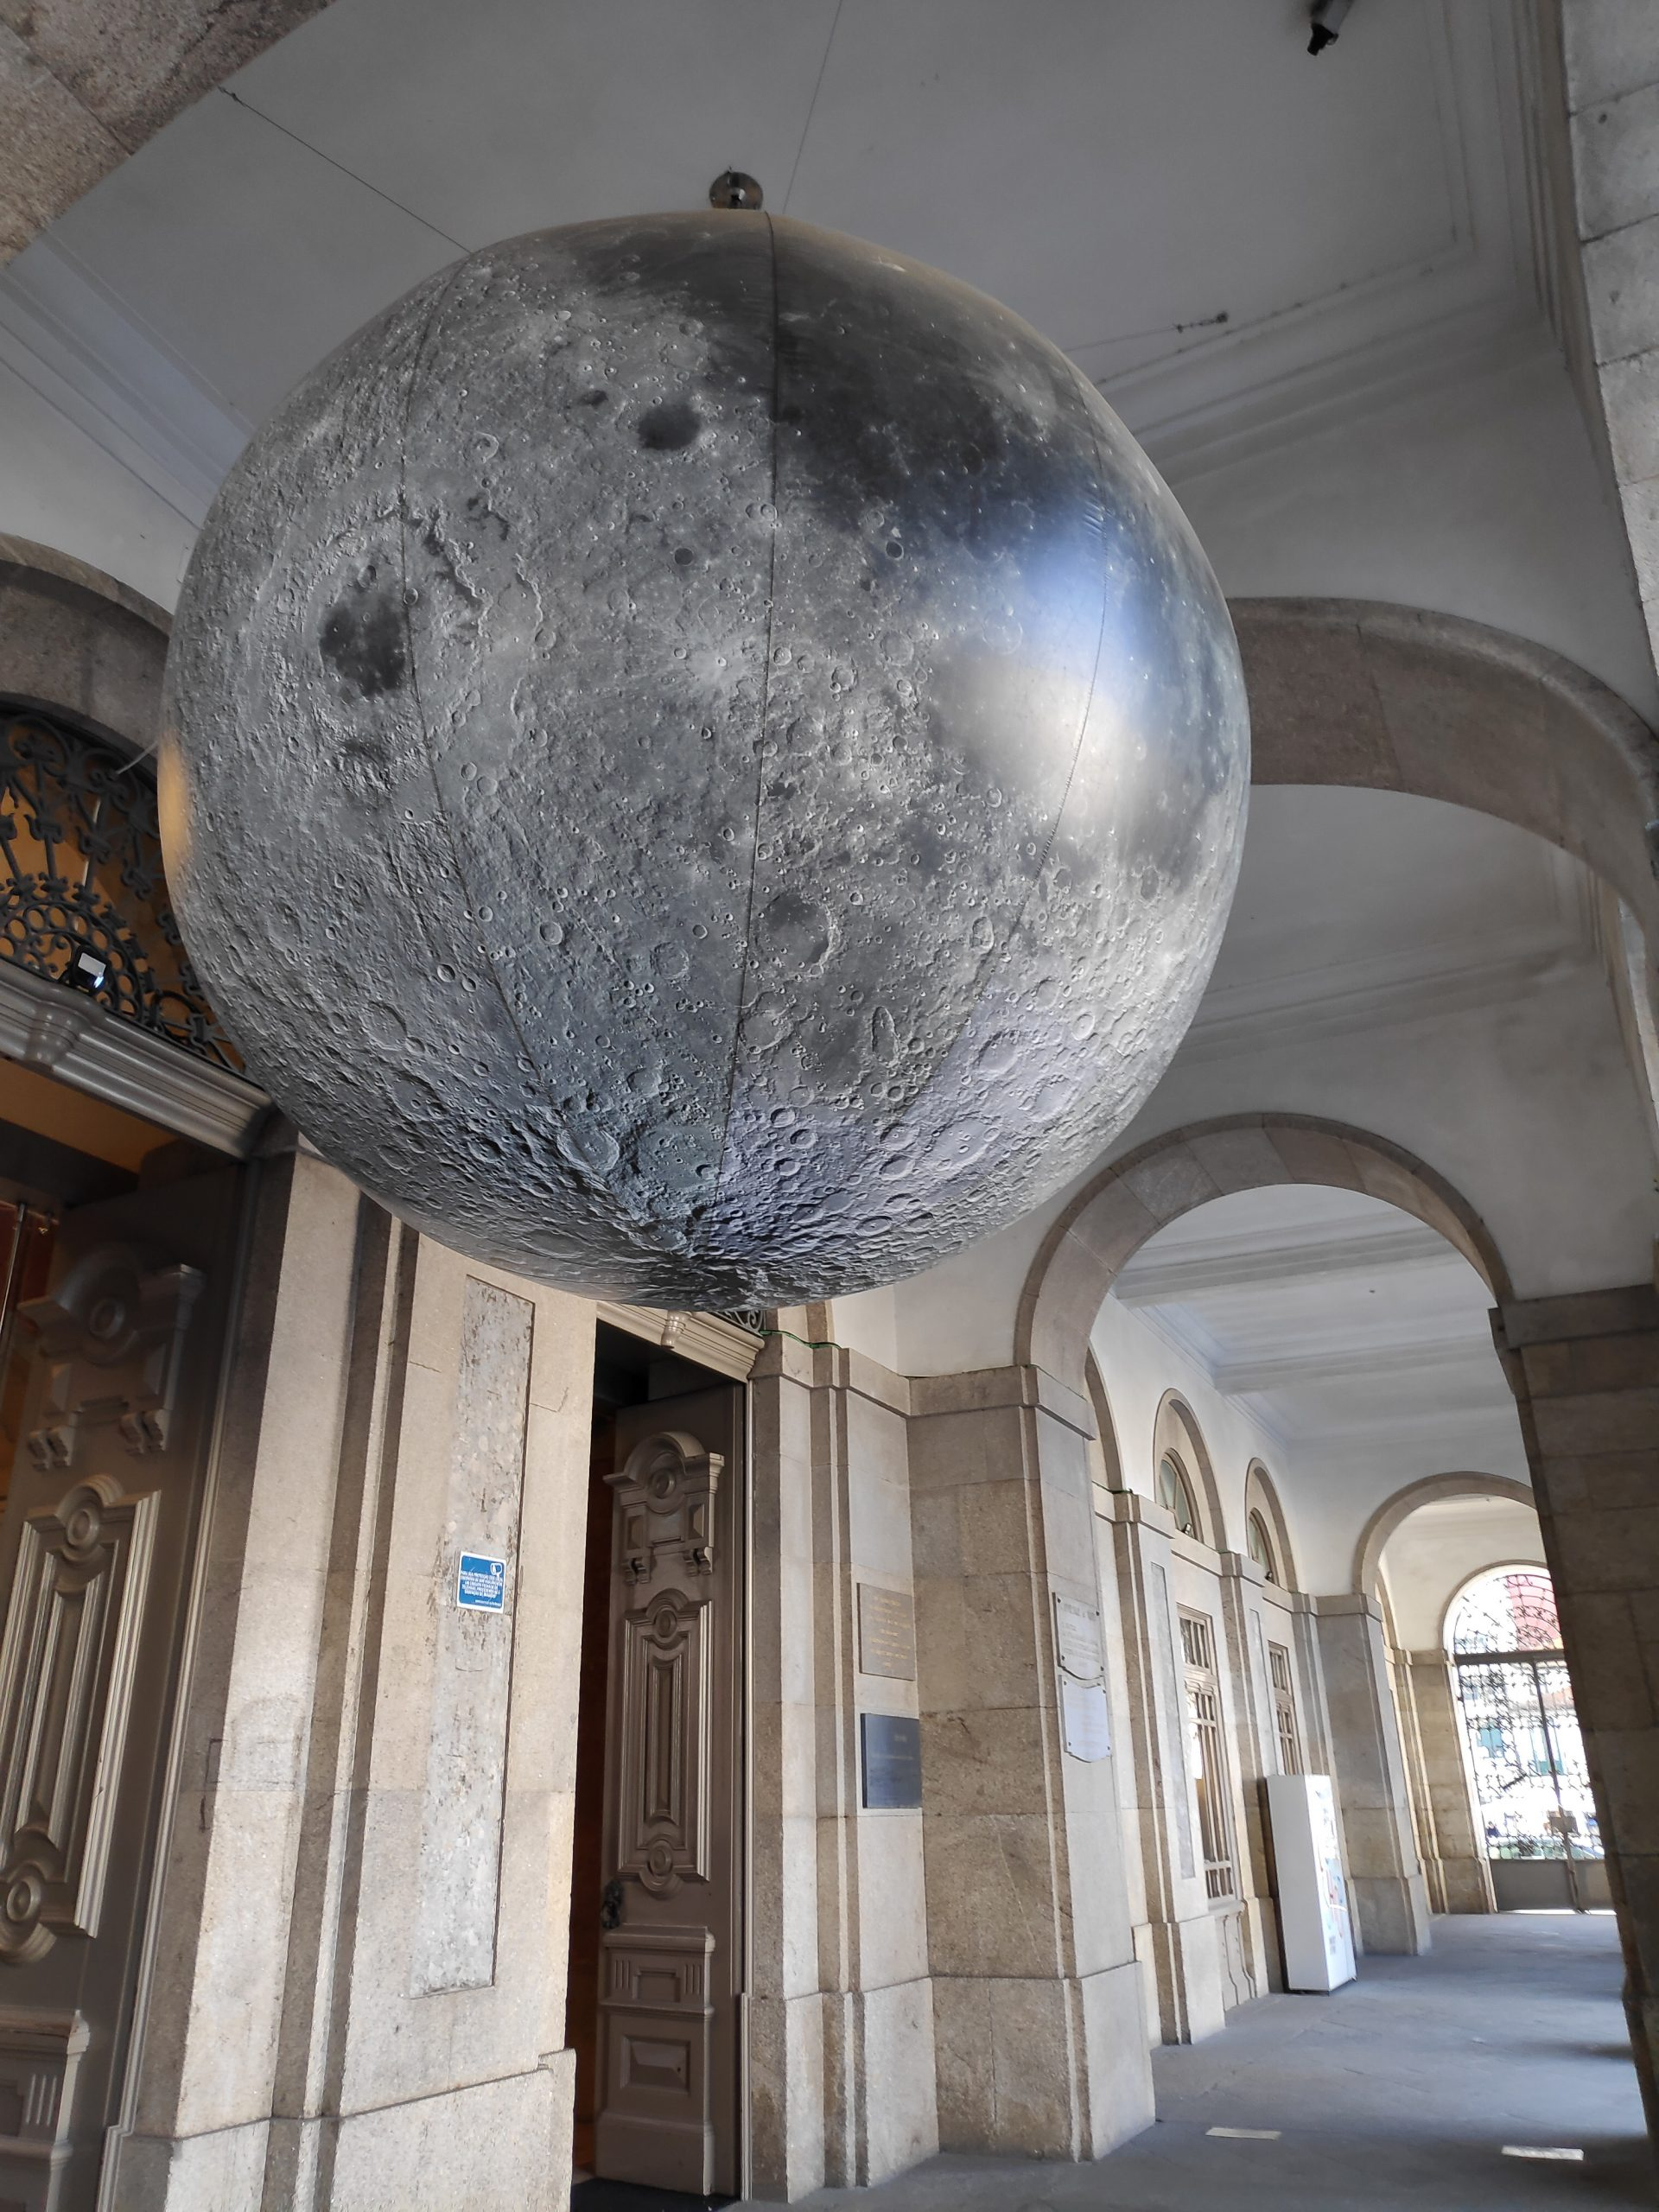 Gigantic moon in front of a museum.